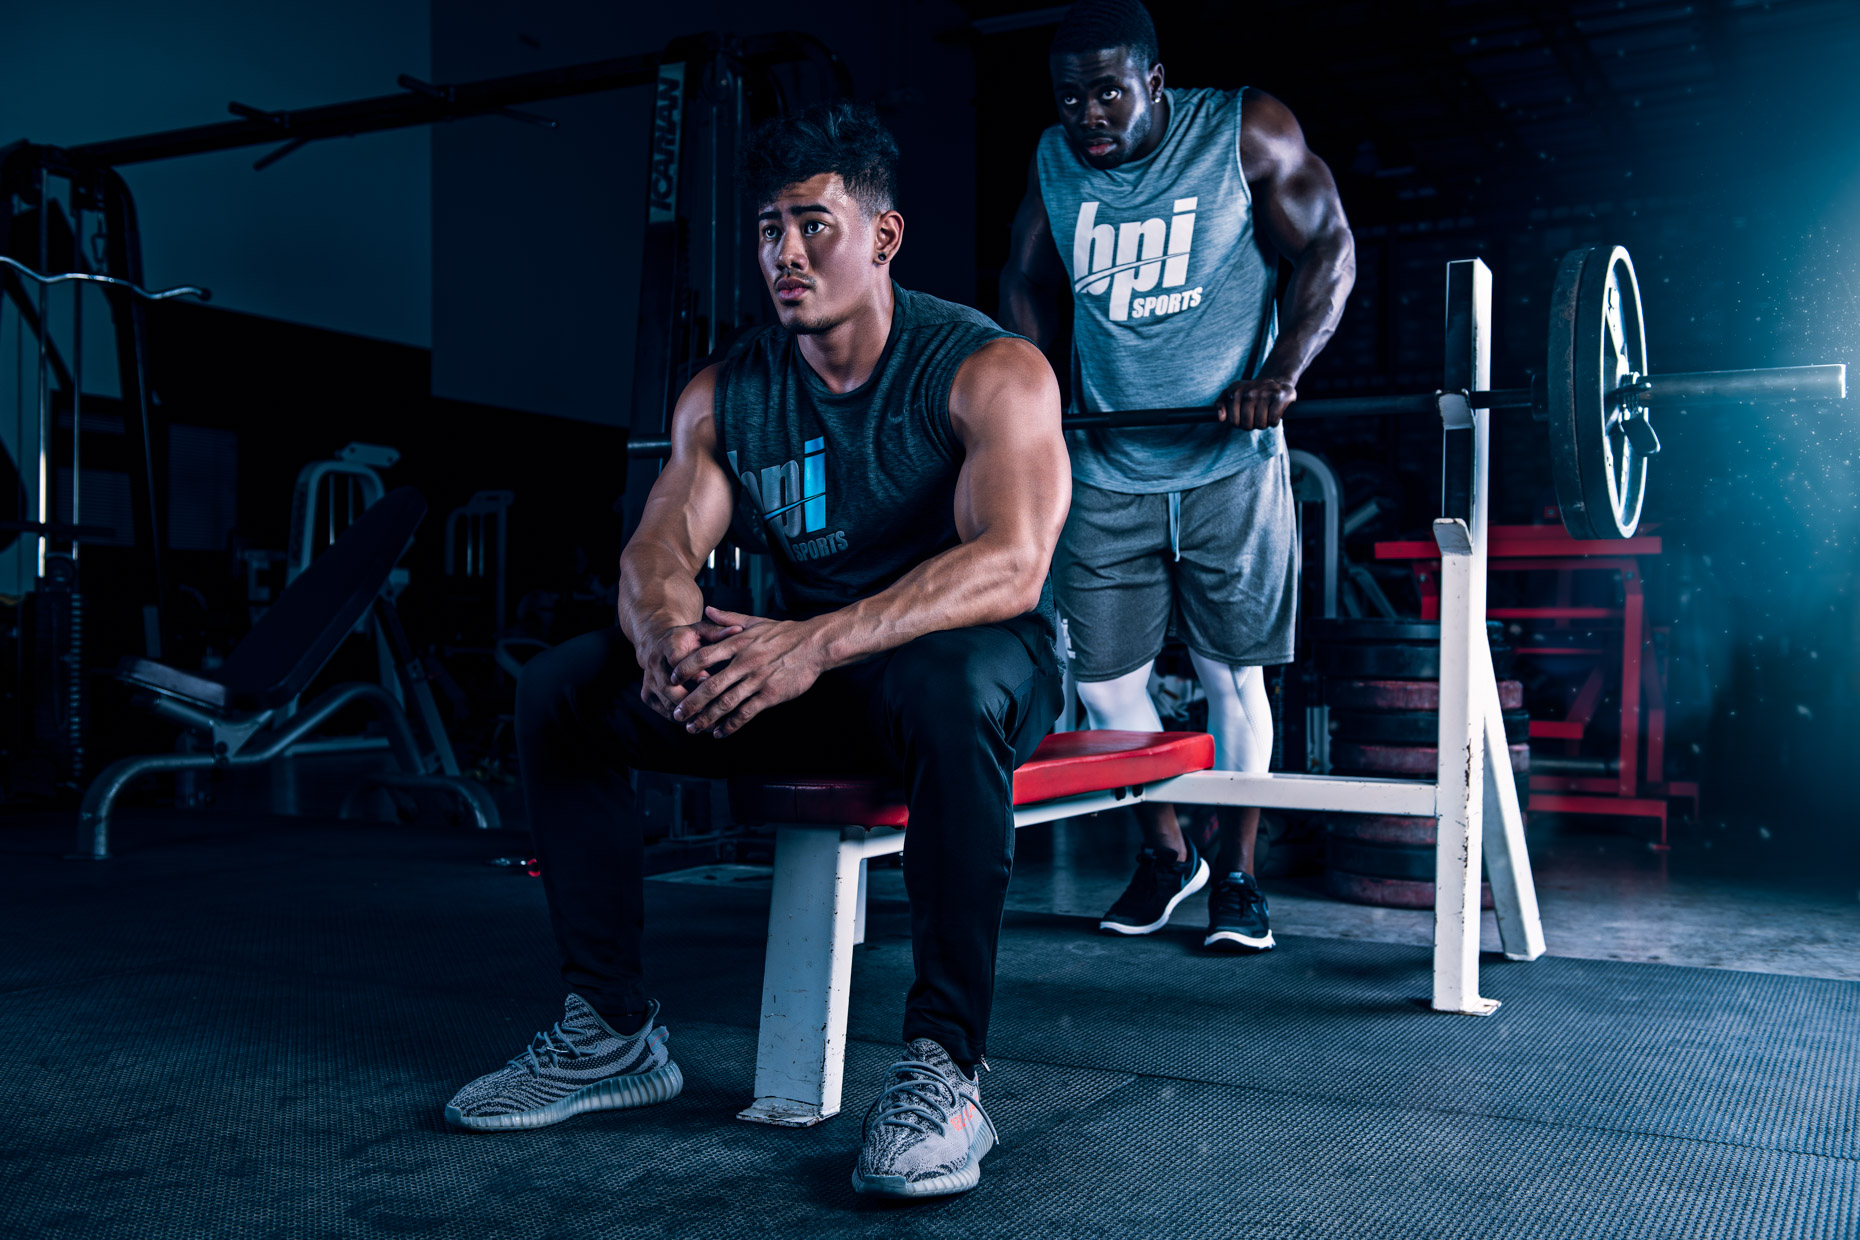 BPI Sports supplement brand ambassador athlete, Nevin Wood and Steven Cao